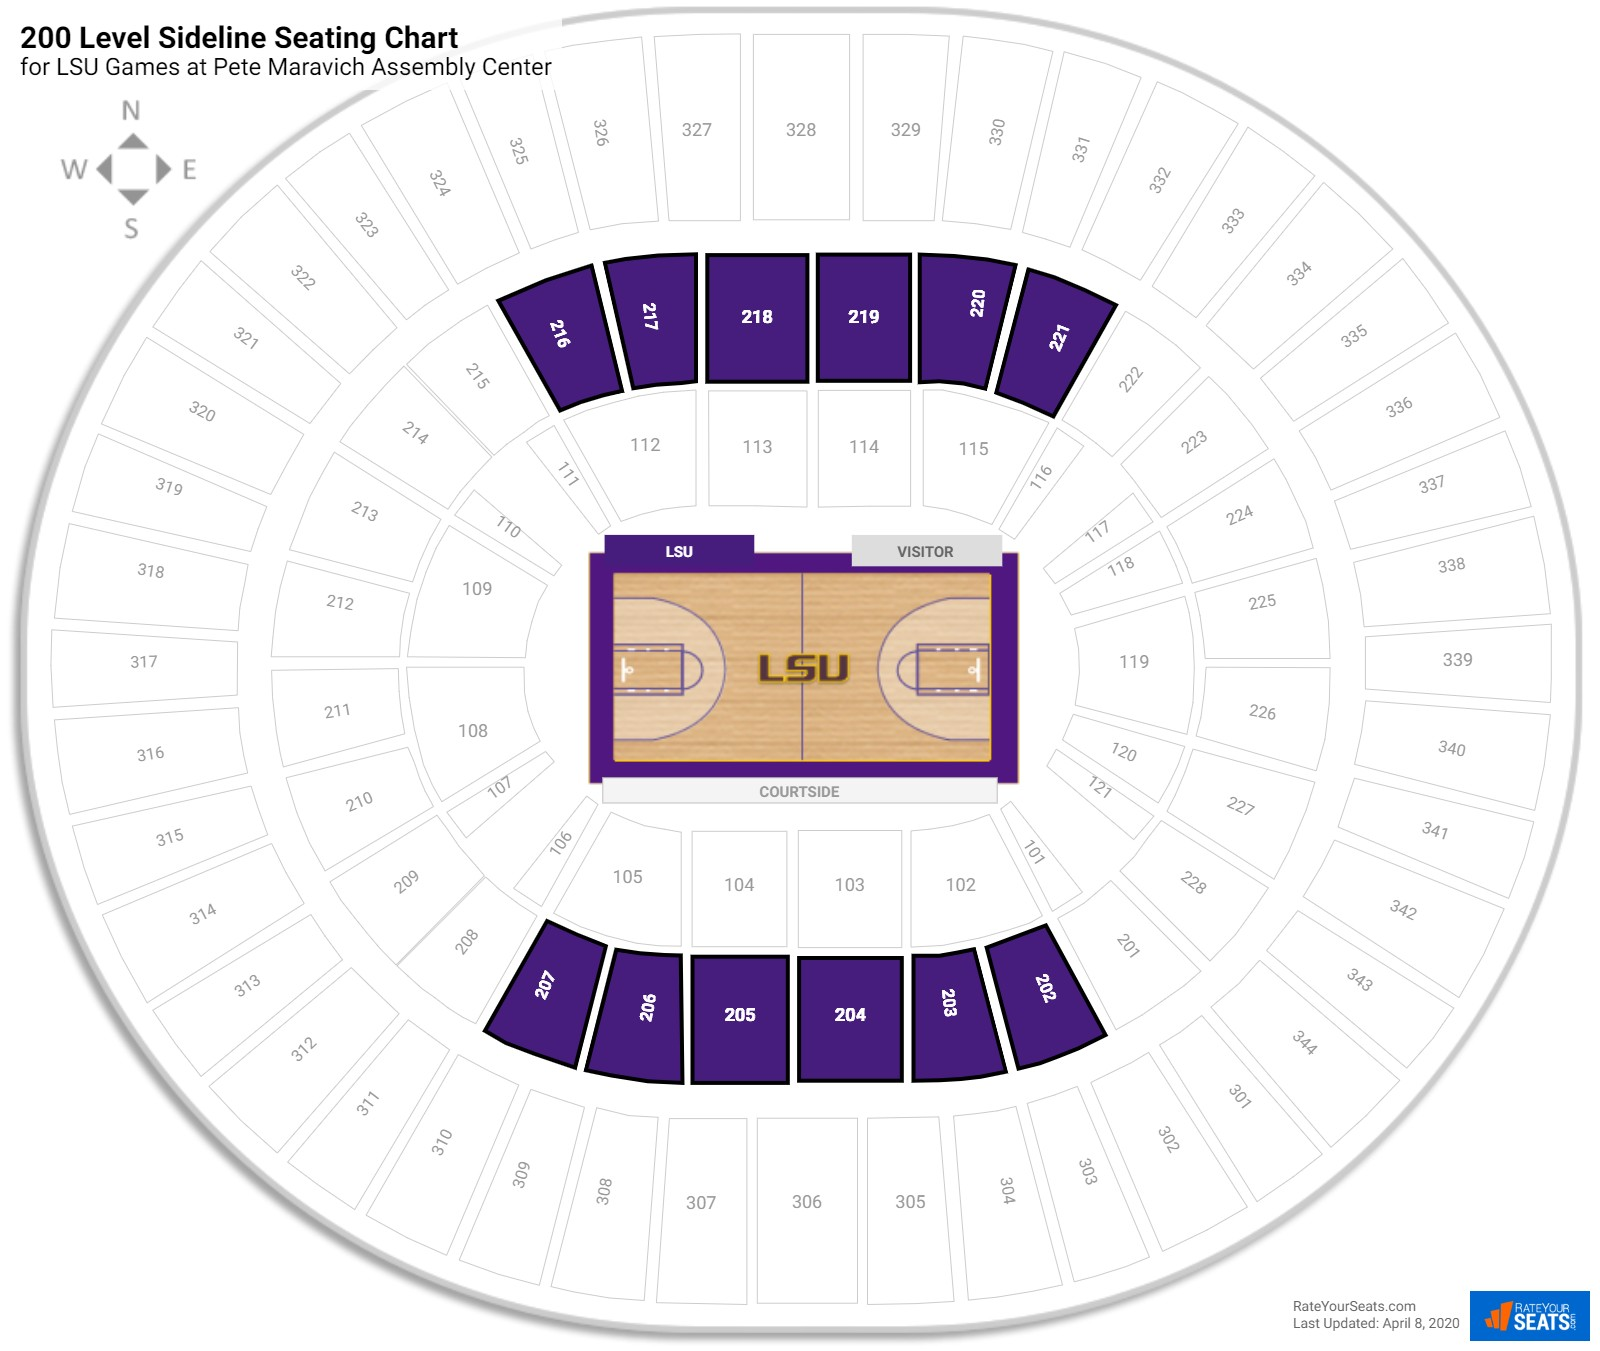 Pete Maravich Assembly Center 200 Level Side seating chart